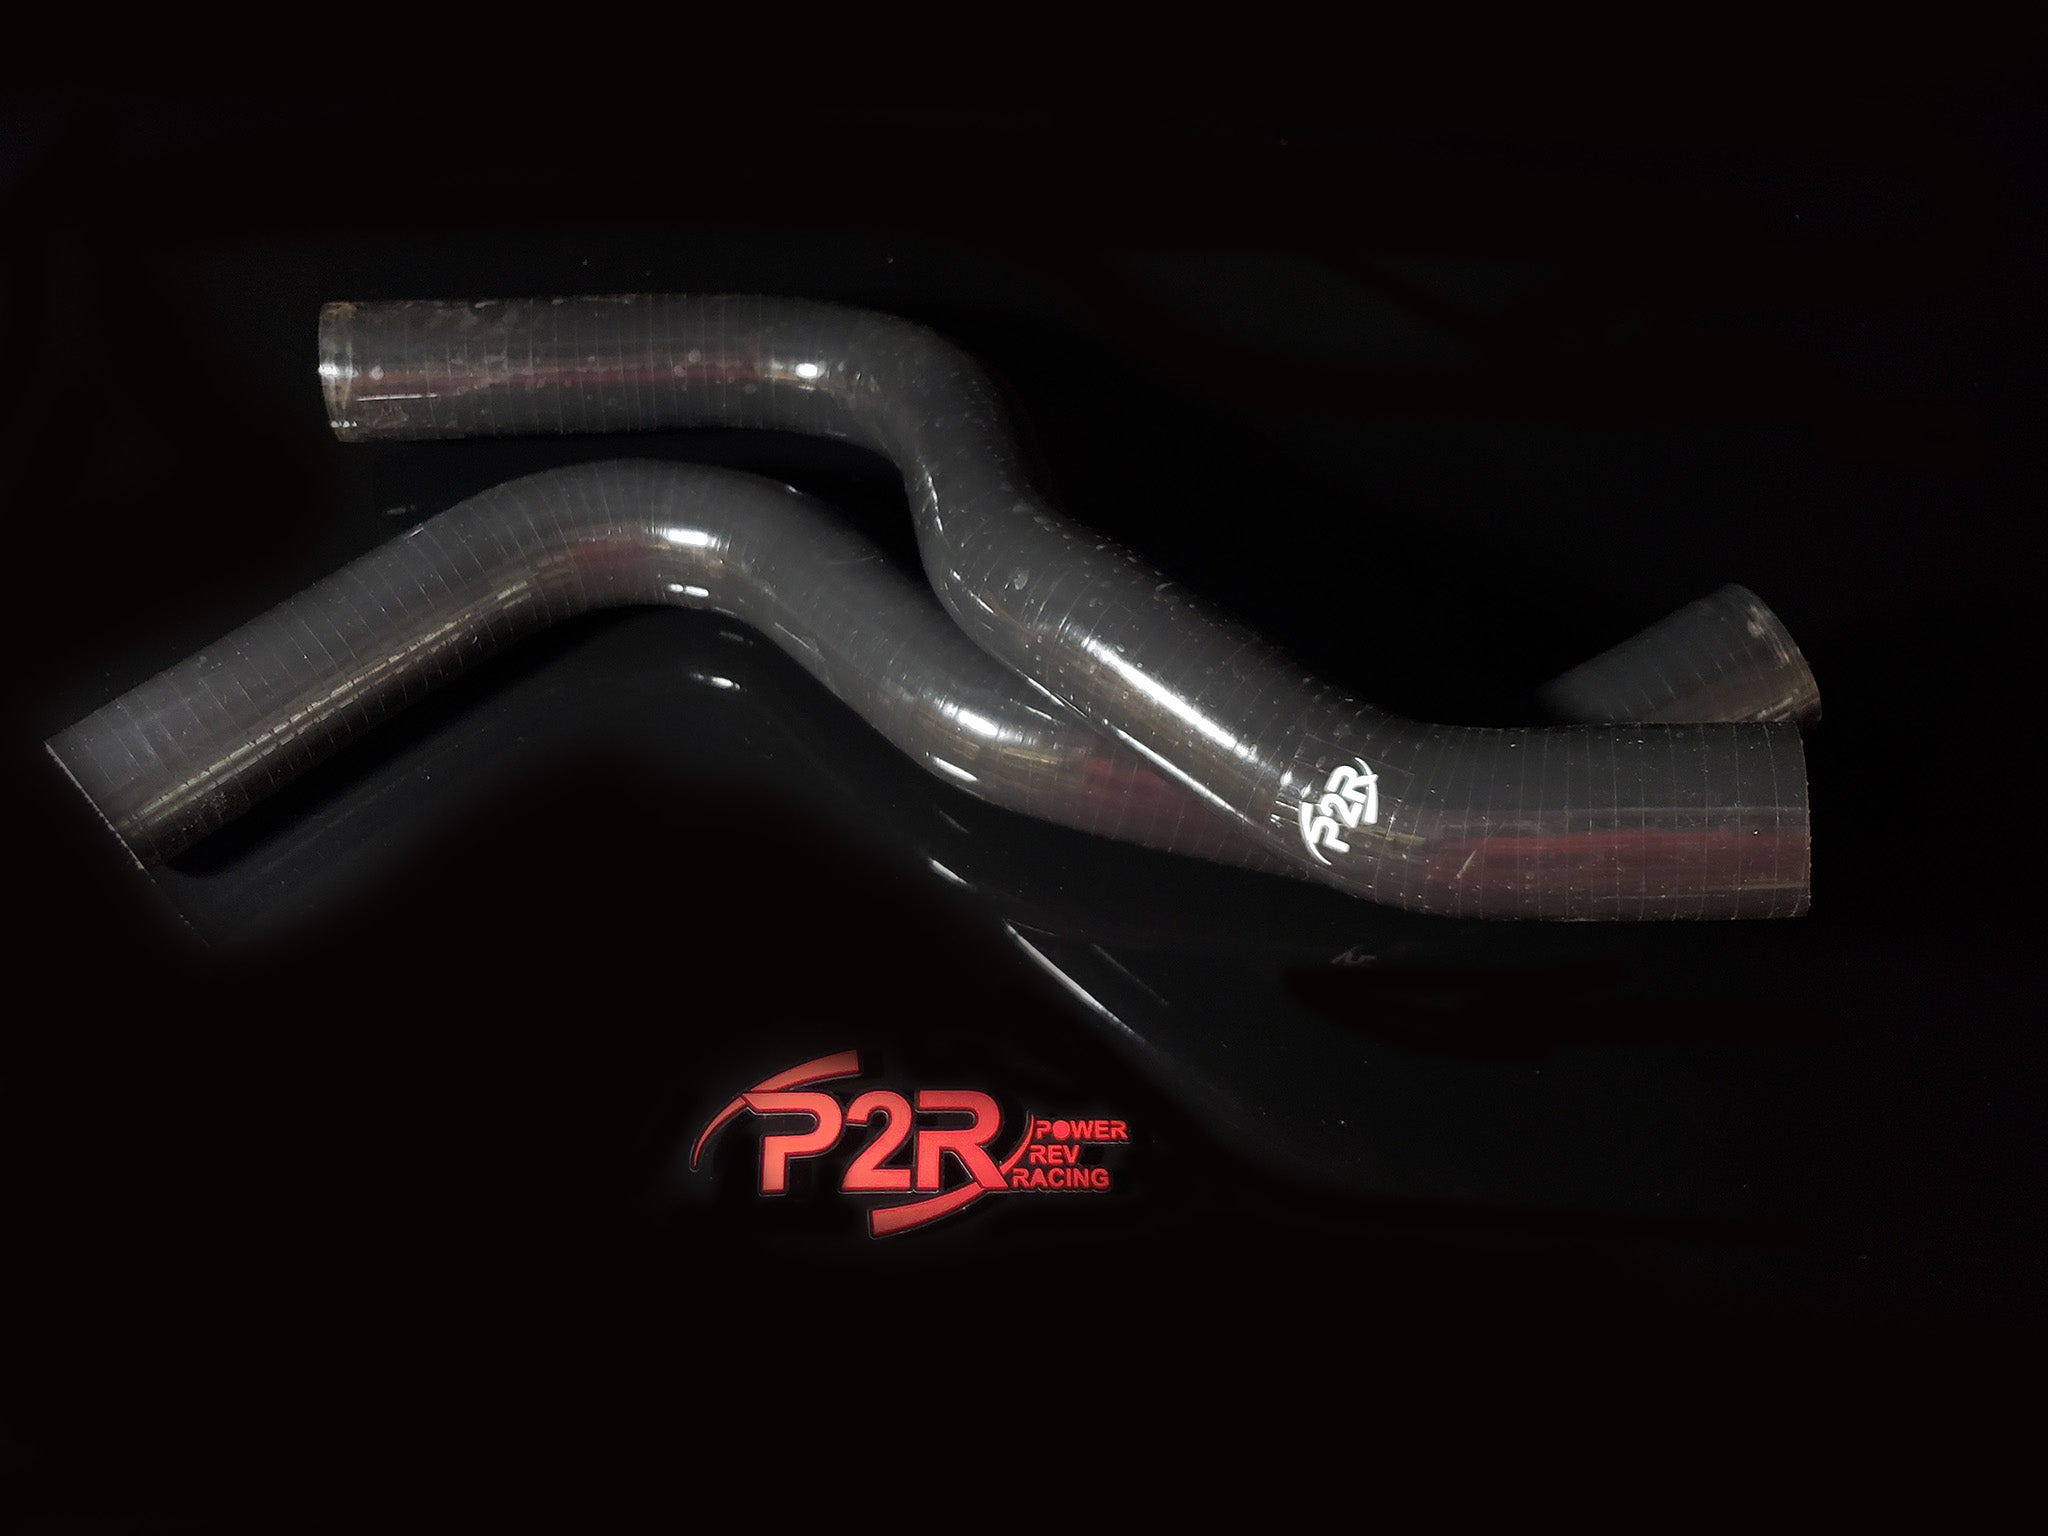 P2R PowerRevRacing - BLACK Silicone Radiator Hoses - 2010-14 Acura TL 3.7 SH-AWD Manual - RHK004B